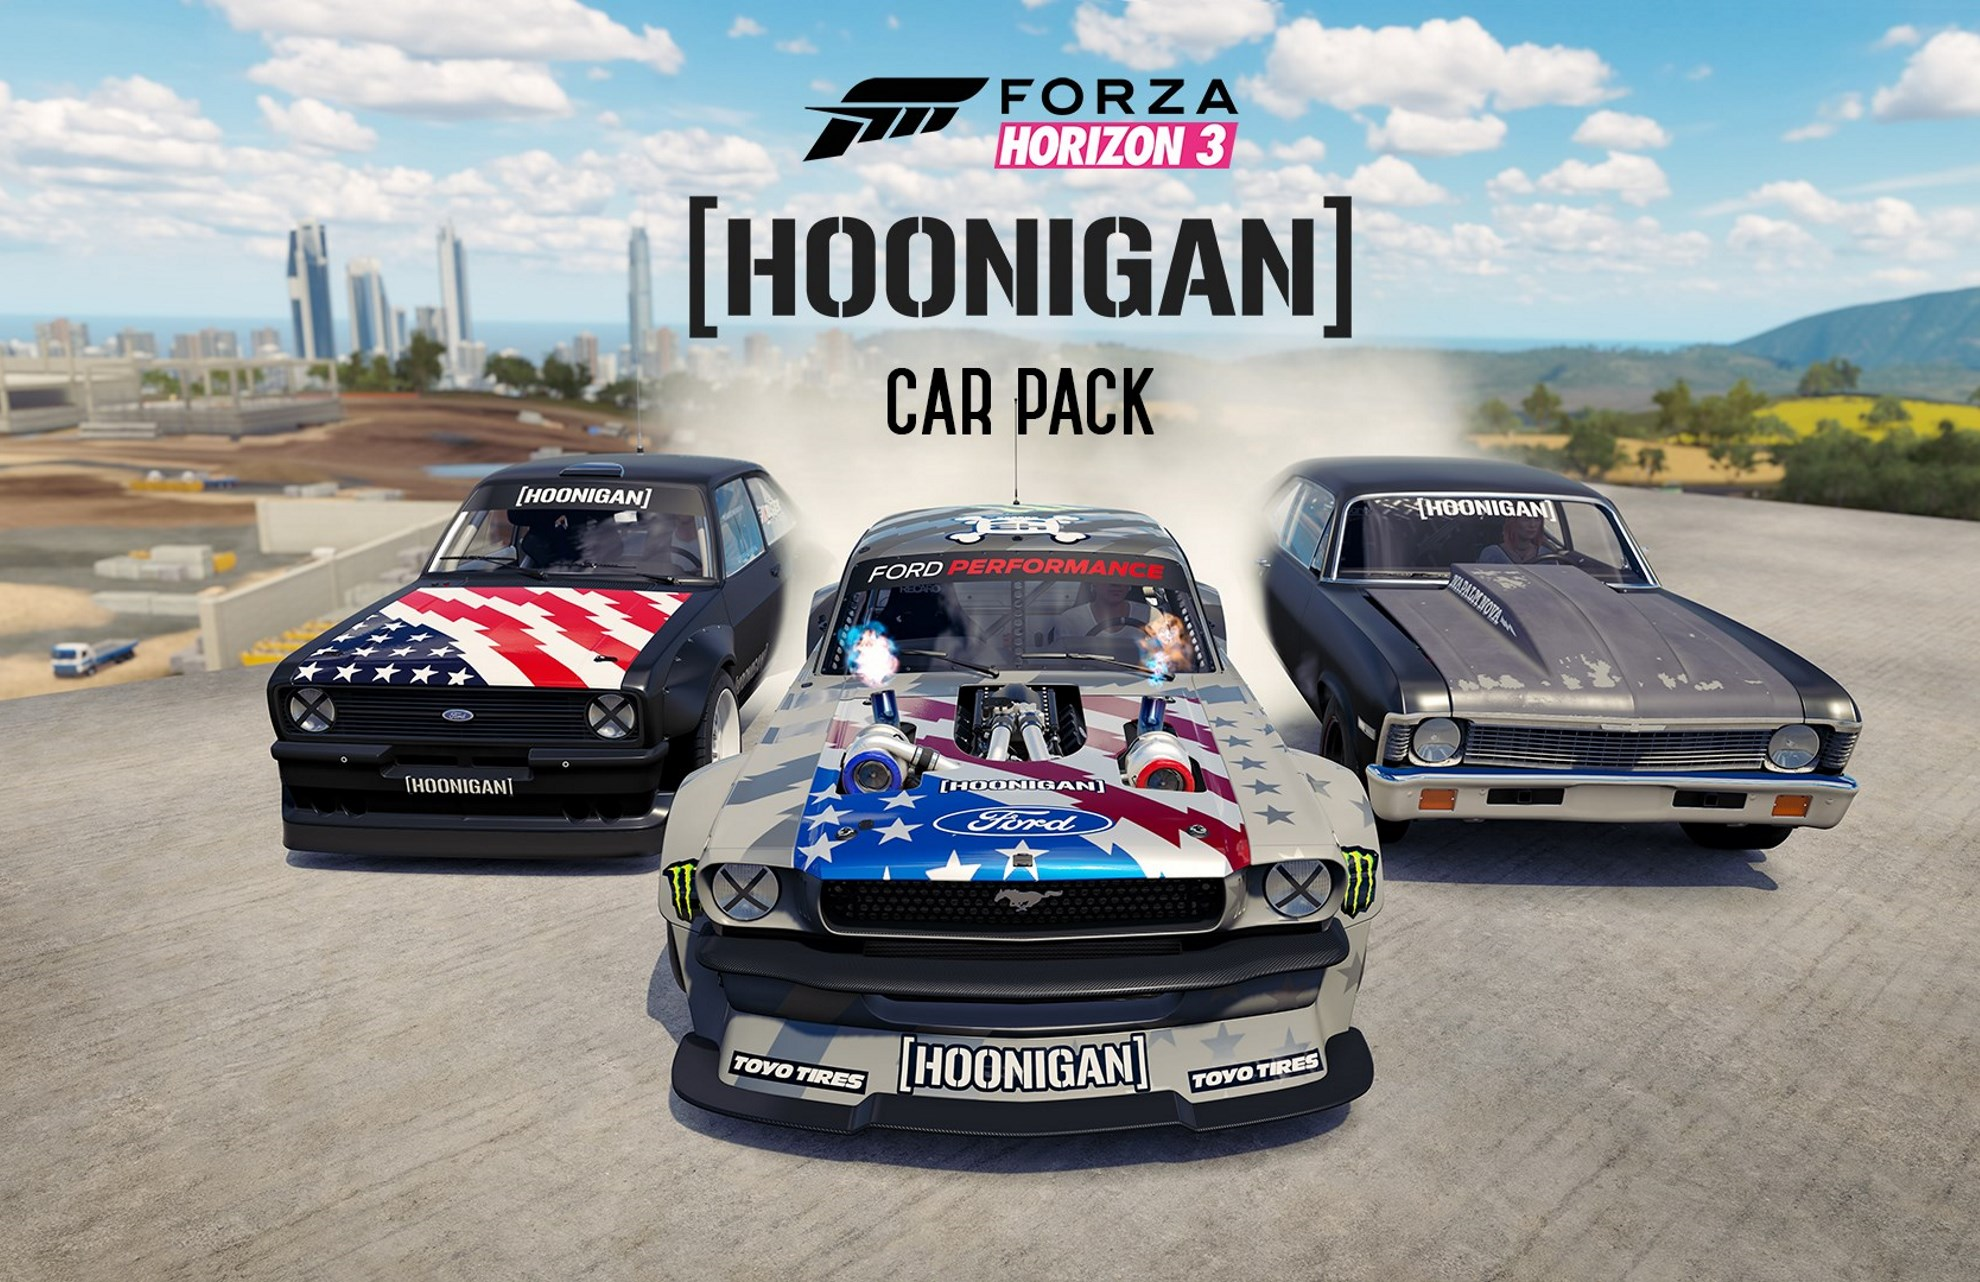 forza horizon 3 un hoonigan car pack gratuit le 15 ao t avec conditions. Black Bedroom Furniture Sets. Home Design Ideas